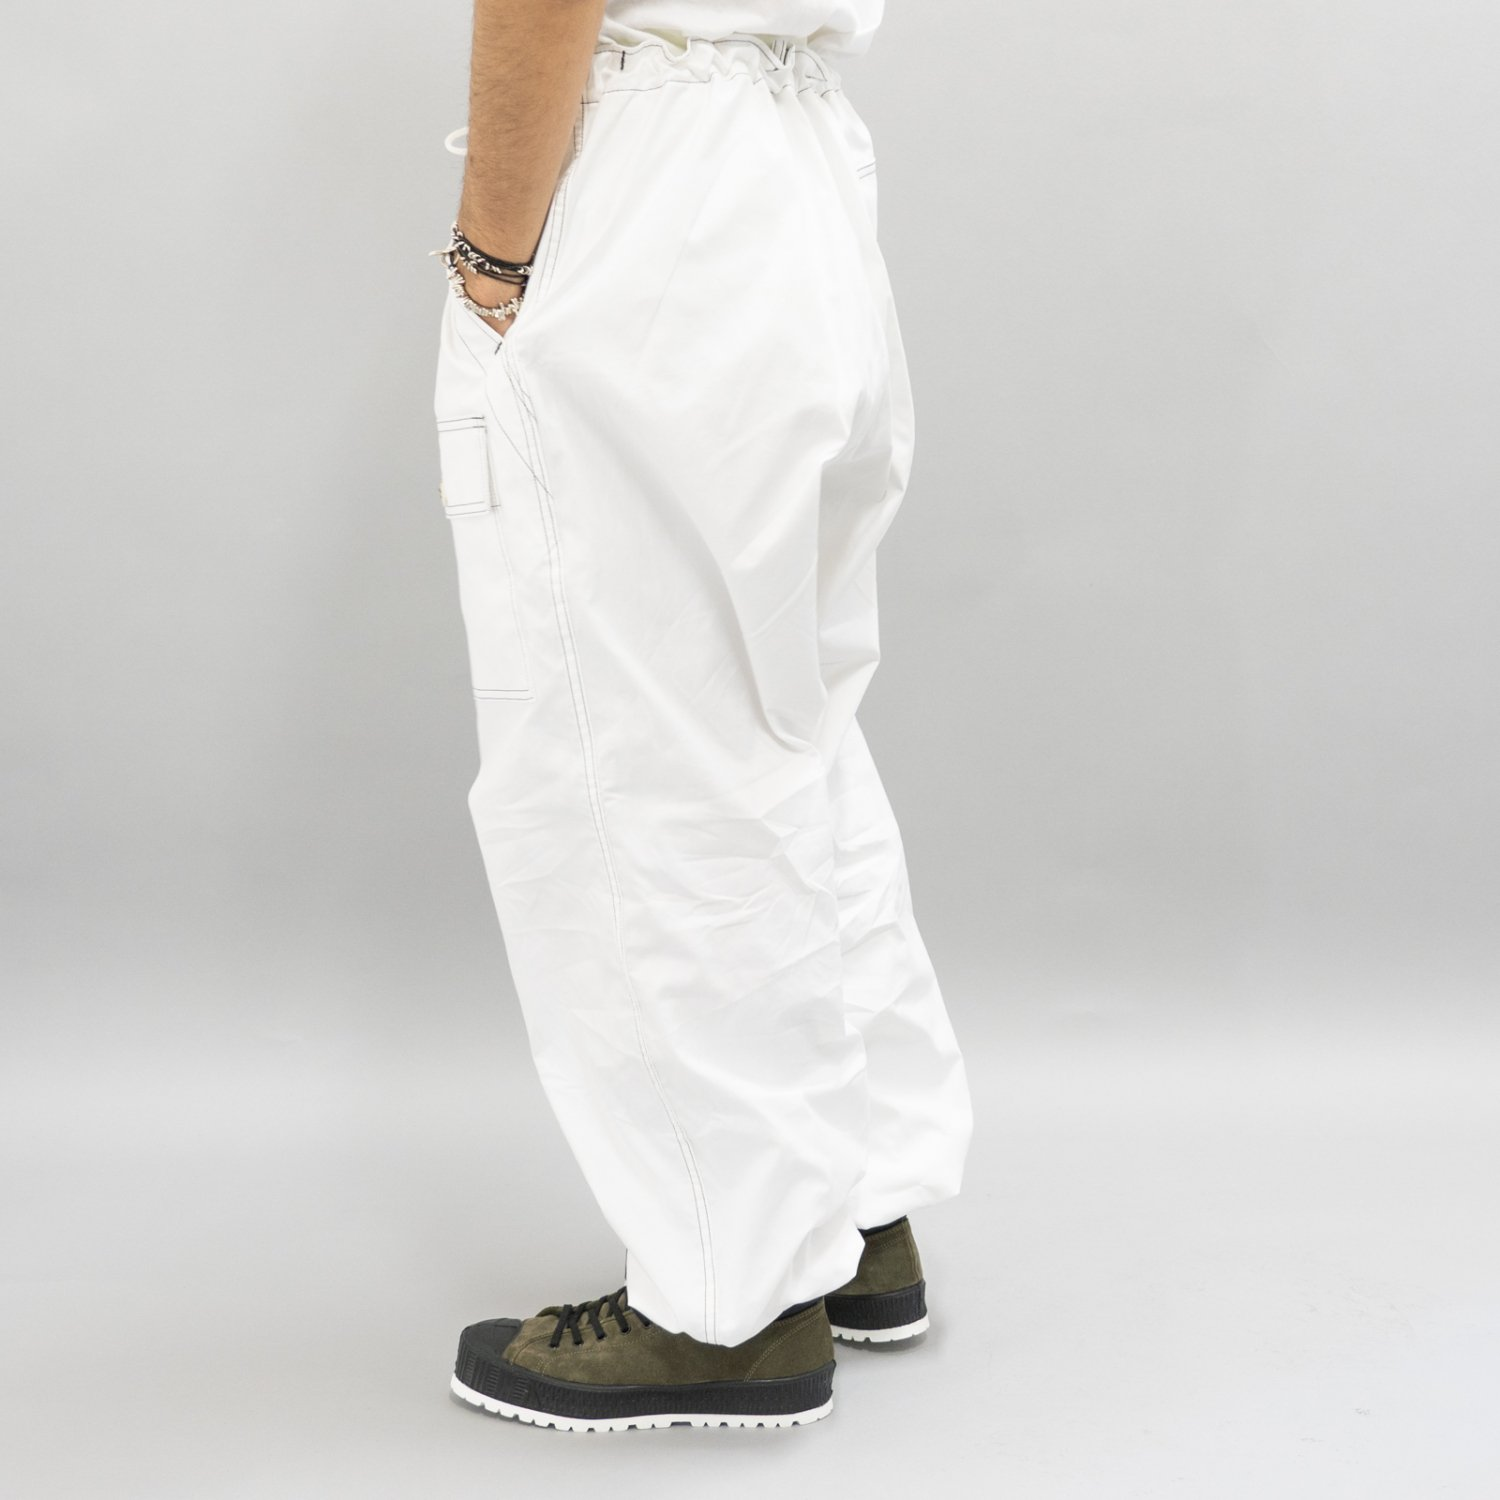 TUKI * 0131 Over Pants * White